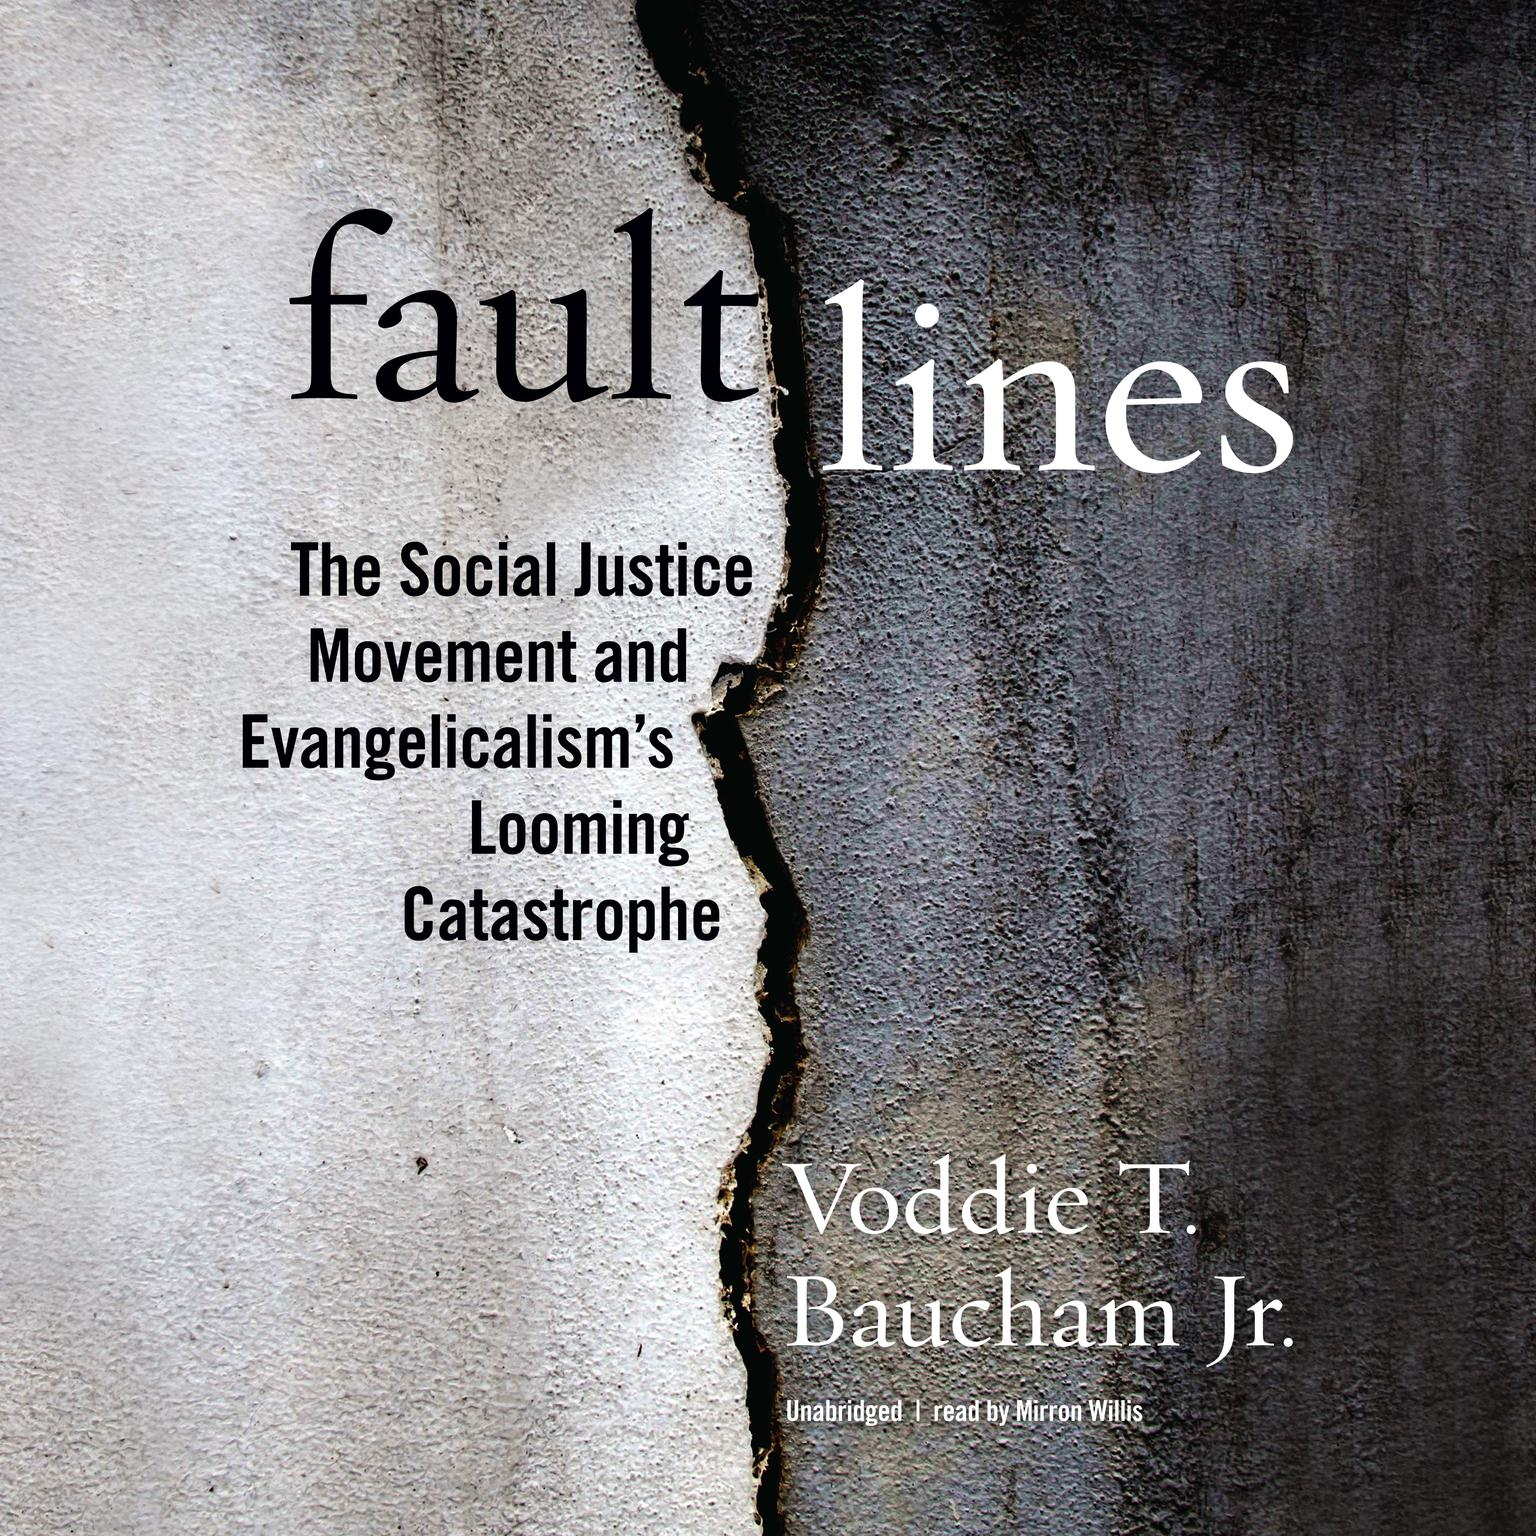 Fault Lines: The Social Justice Movement and Evangelicalism's Looming Catastrophe Audiobook, by Voddie T. Baucham